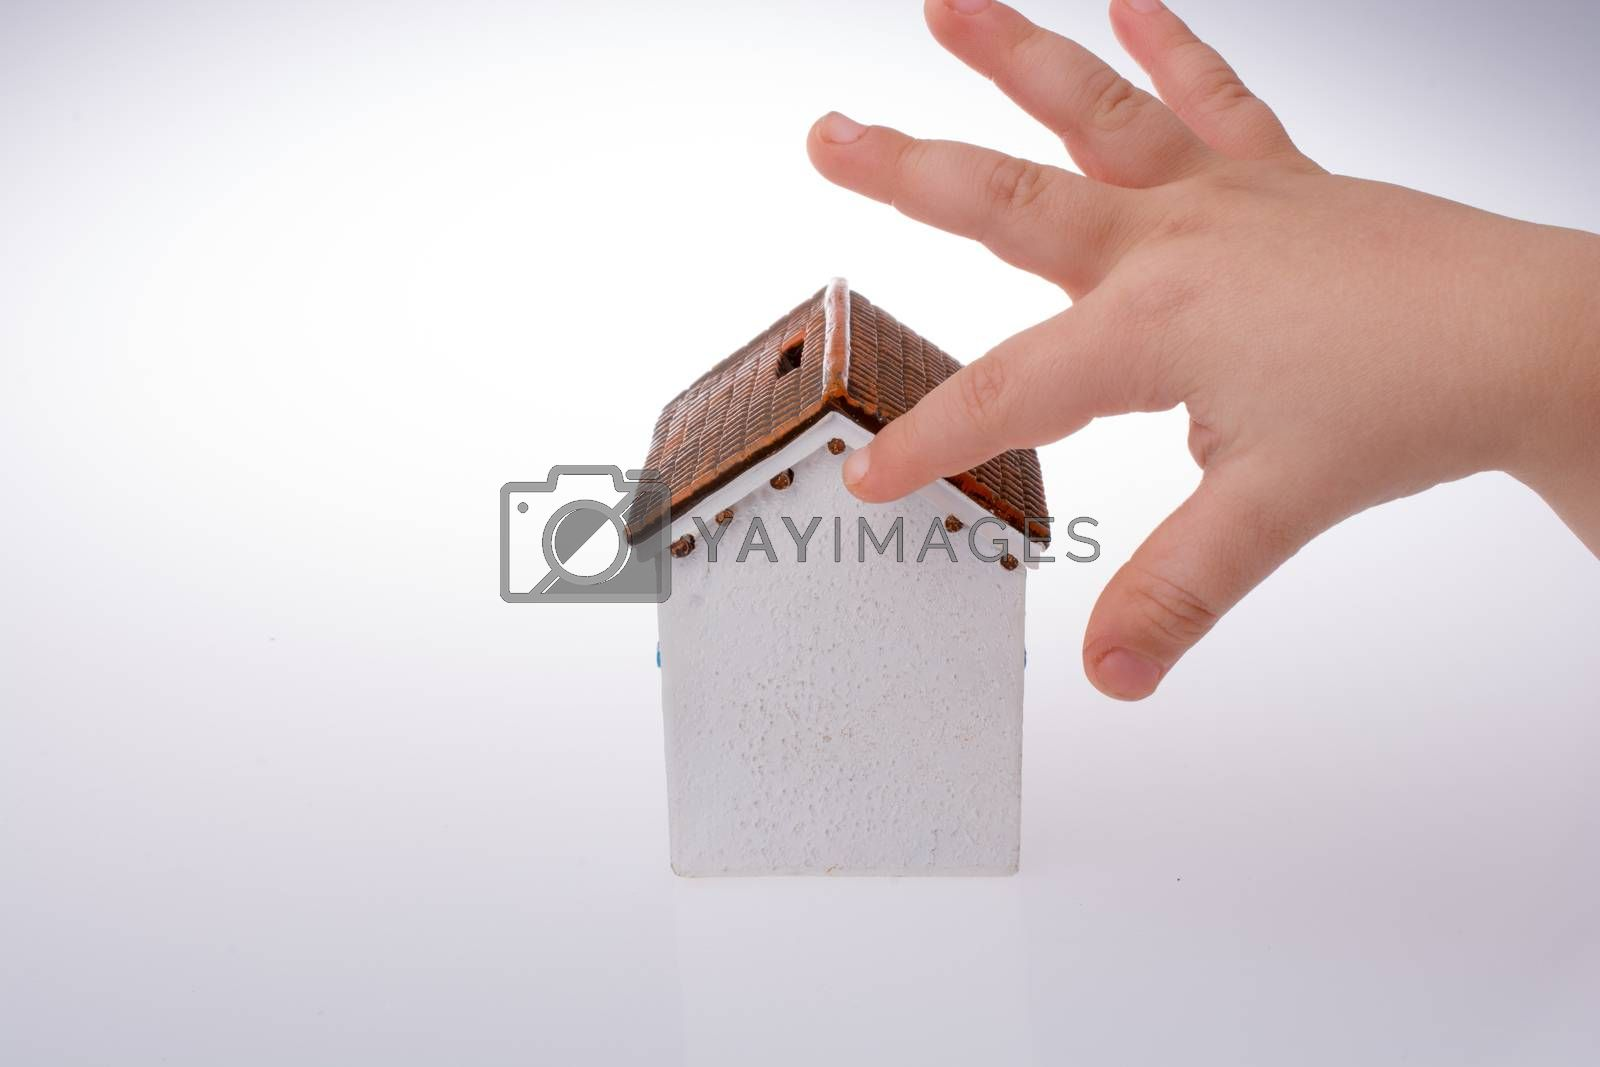 Little model house and  a hand  on a light white color background